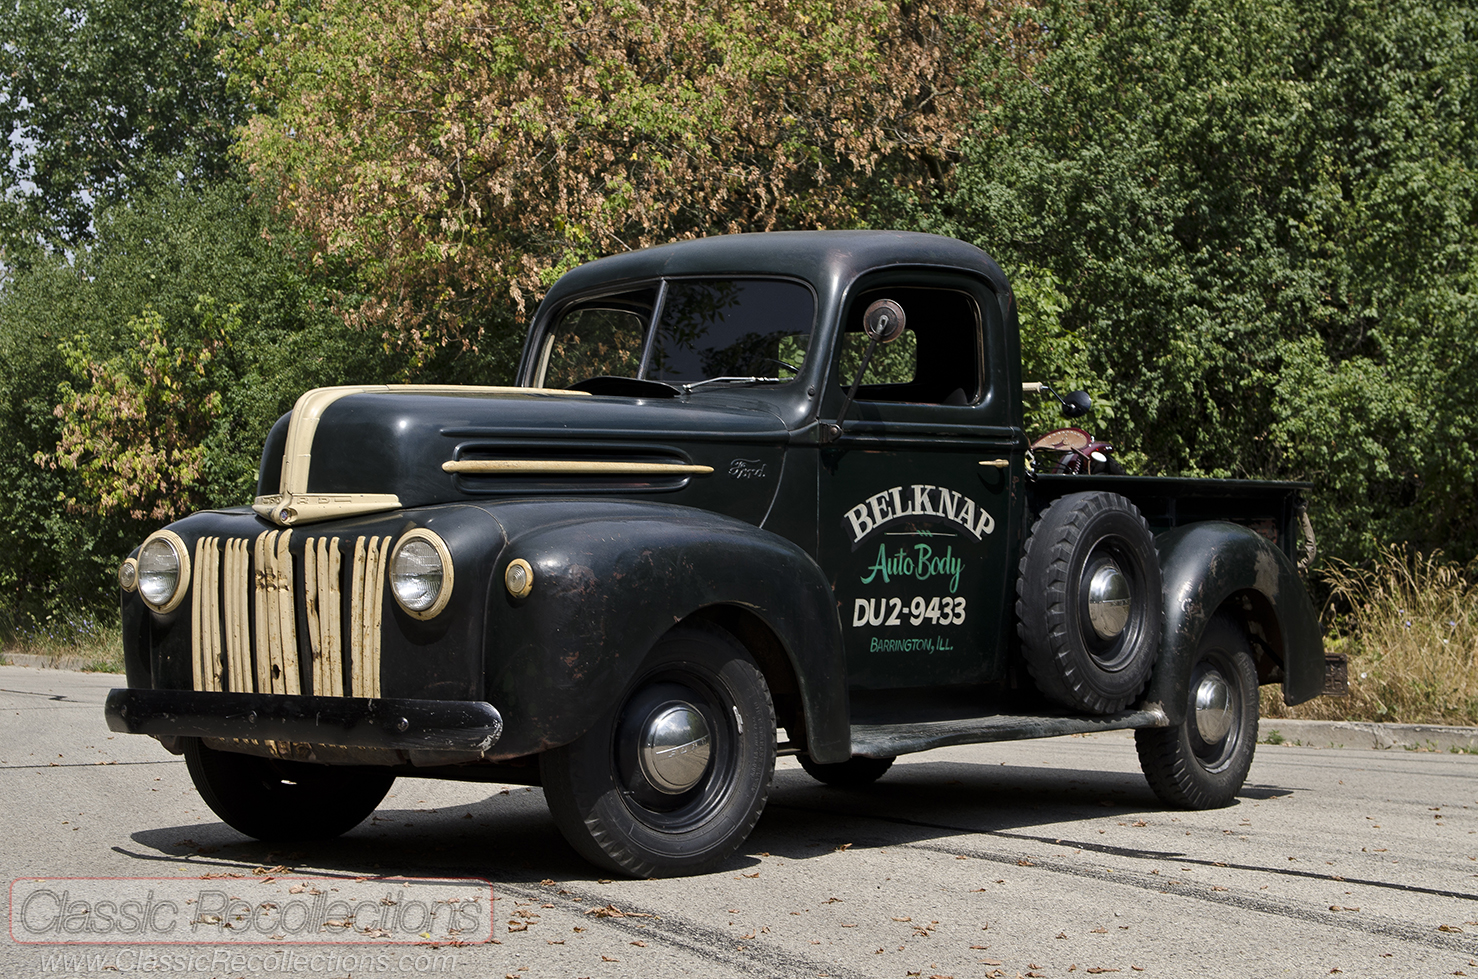 Feature 1947 Ford Pickup Classic Recollections